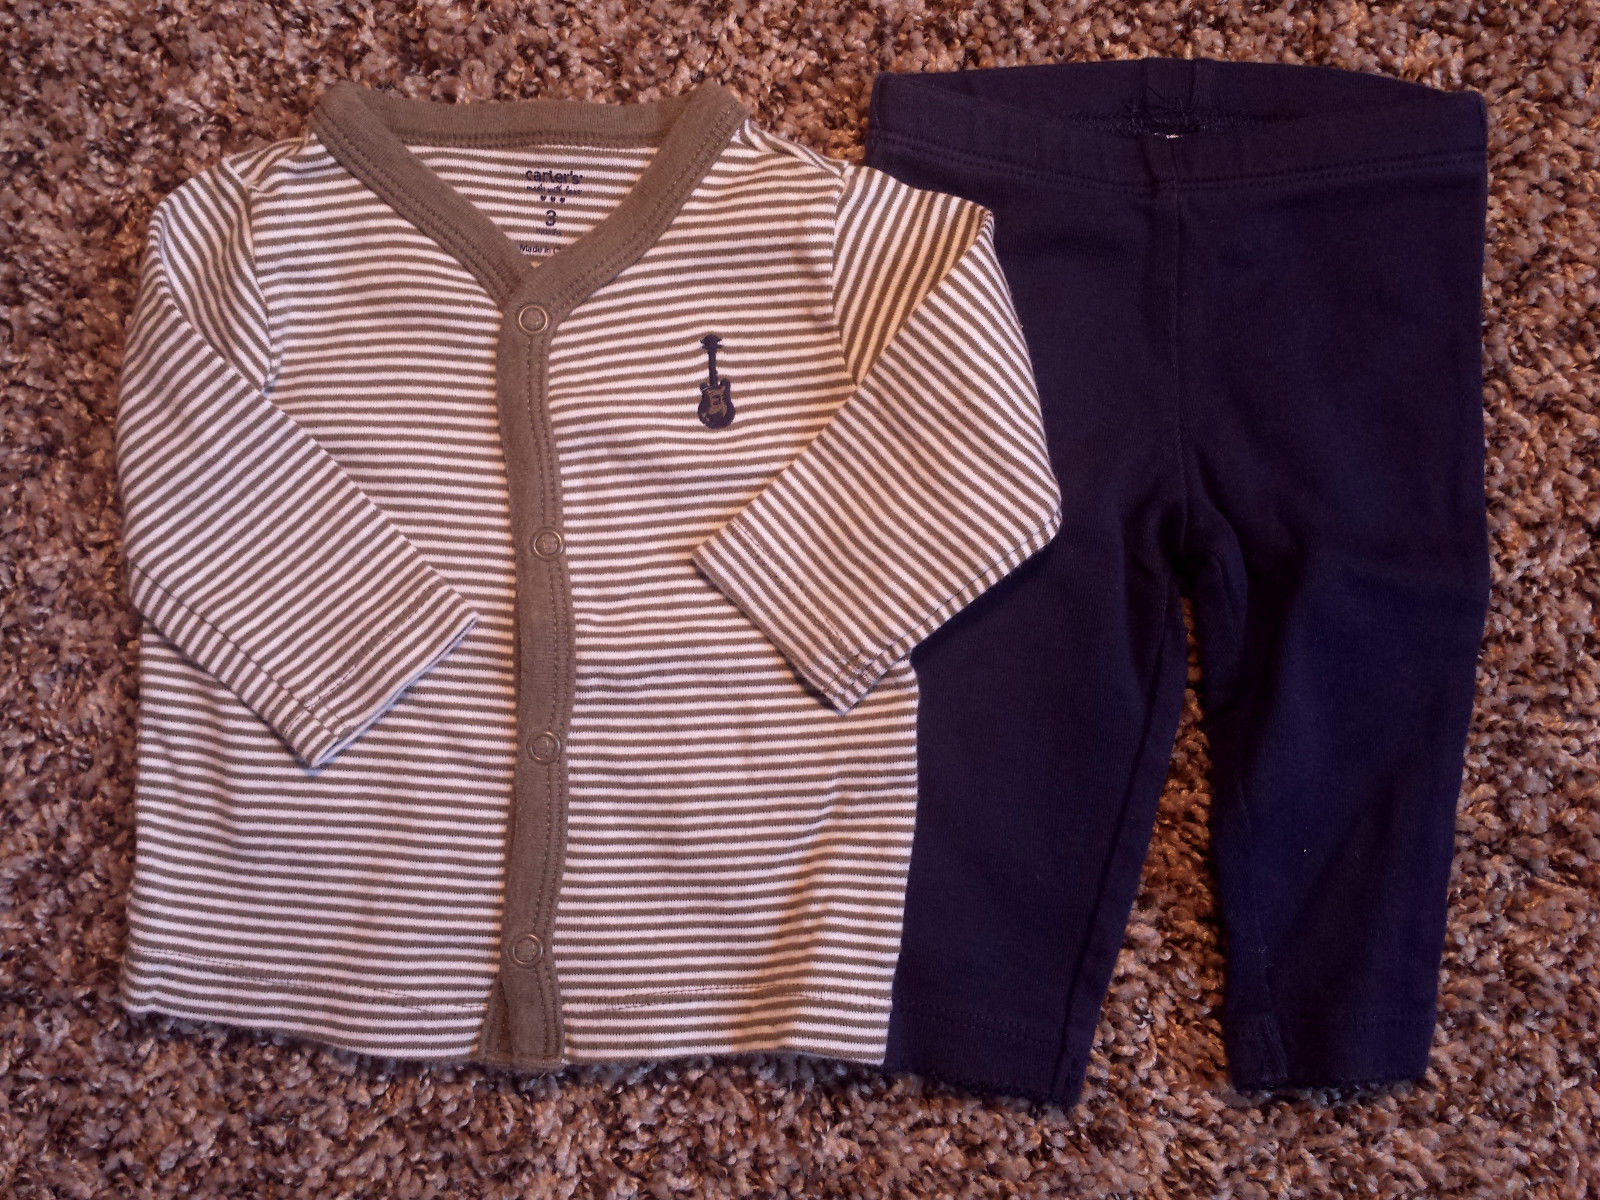 Boy's Size 3 M 0-3 Months 2 Piece Carter's Gray Striped Guitar Top & Navy Pants